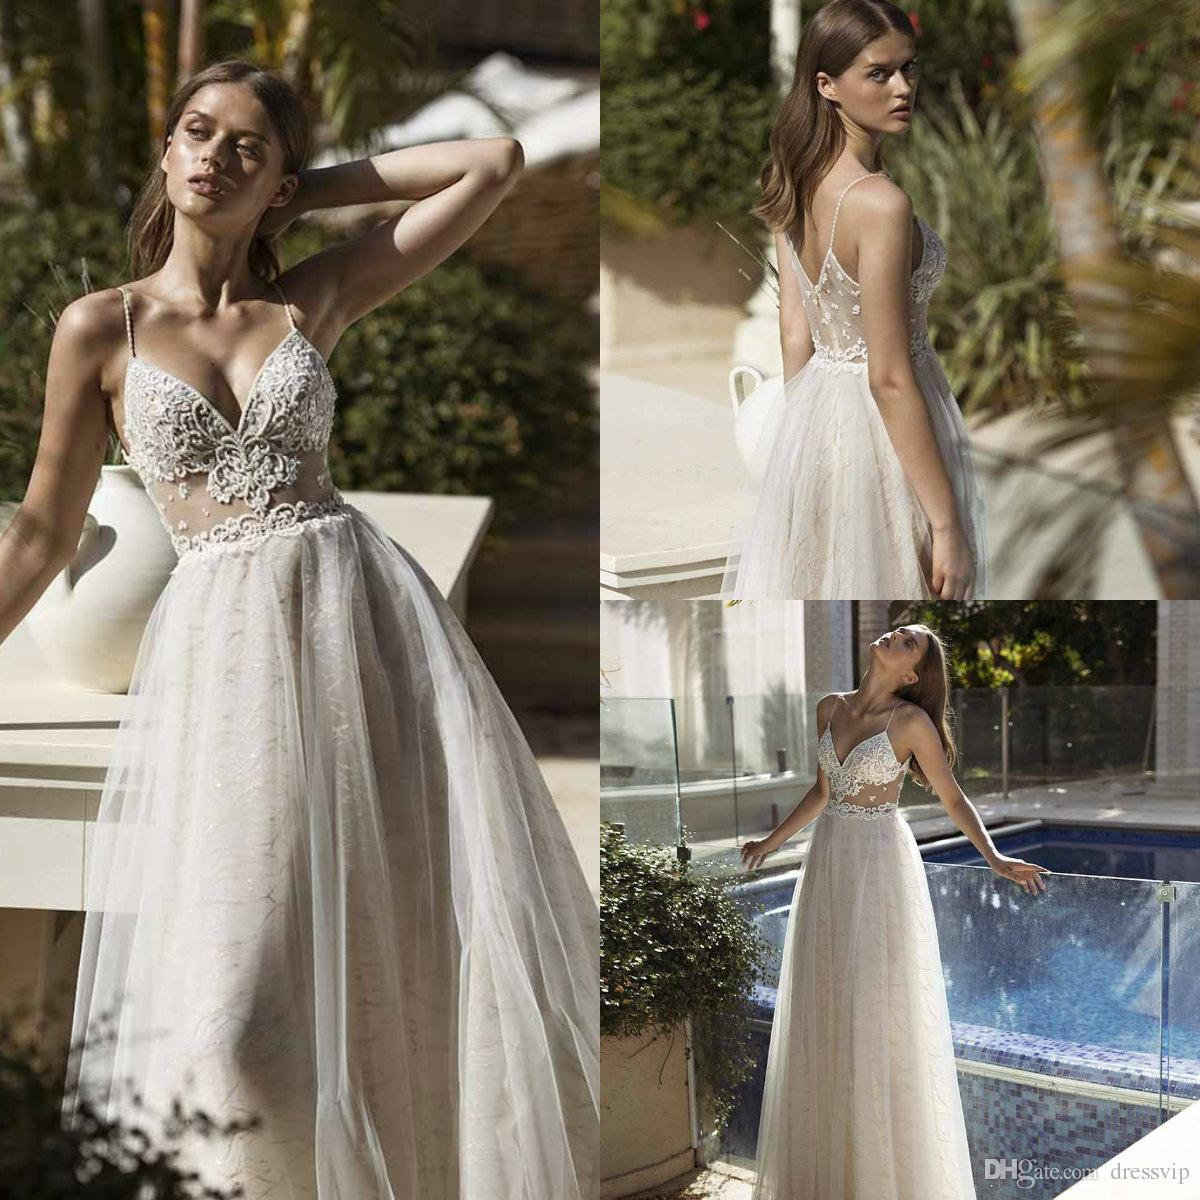 2019 Nurit Hen Beach Wedding Dresses Embroidery Spaghetti Illusion Sexy Boho Wedding Gowns Sweep Train Pearls Backless Lace Bride Dress